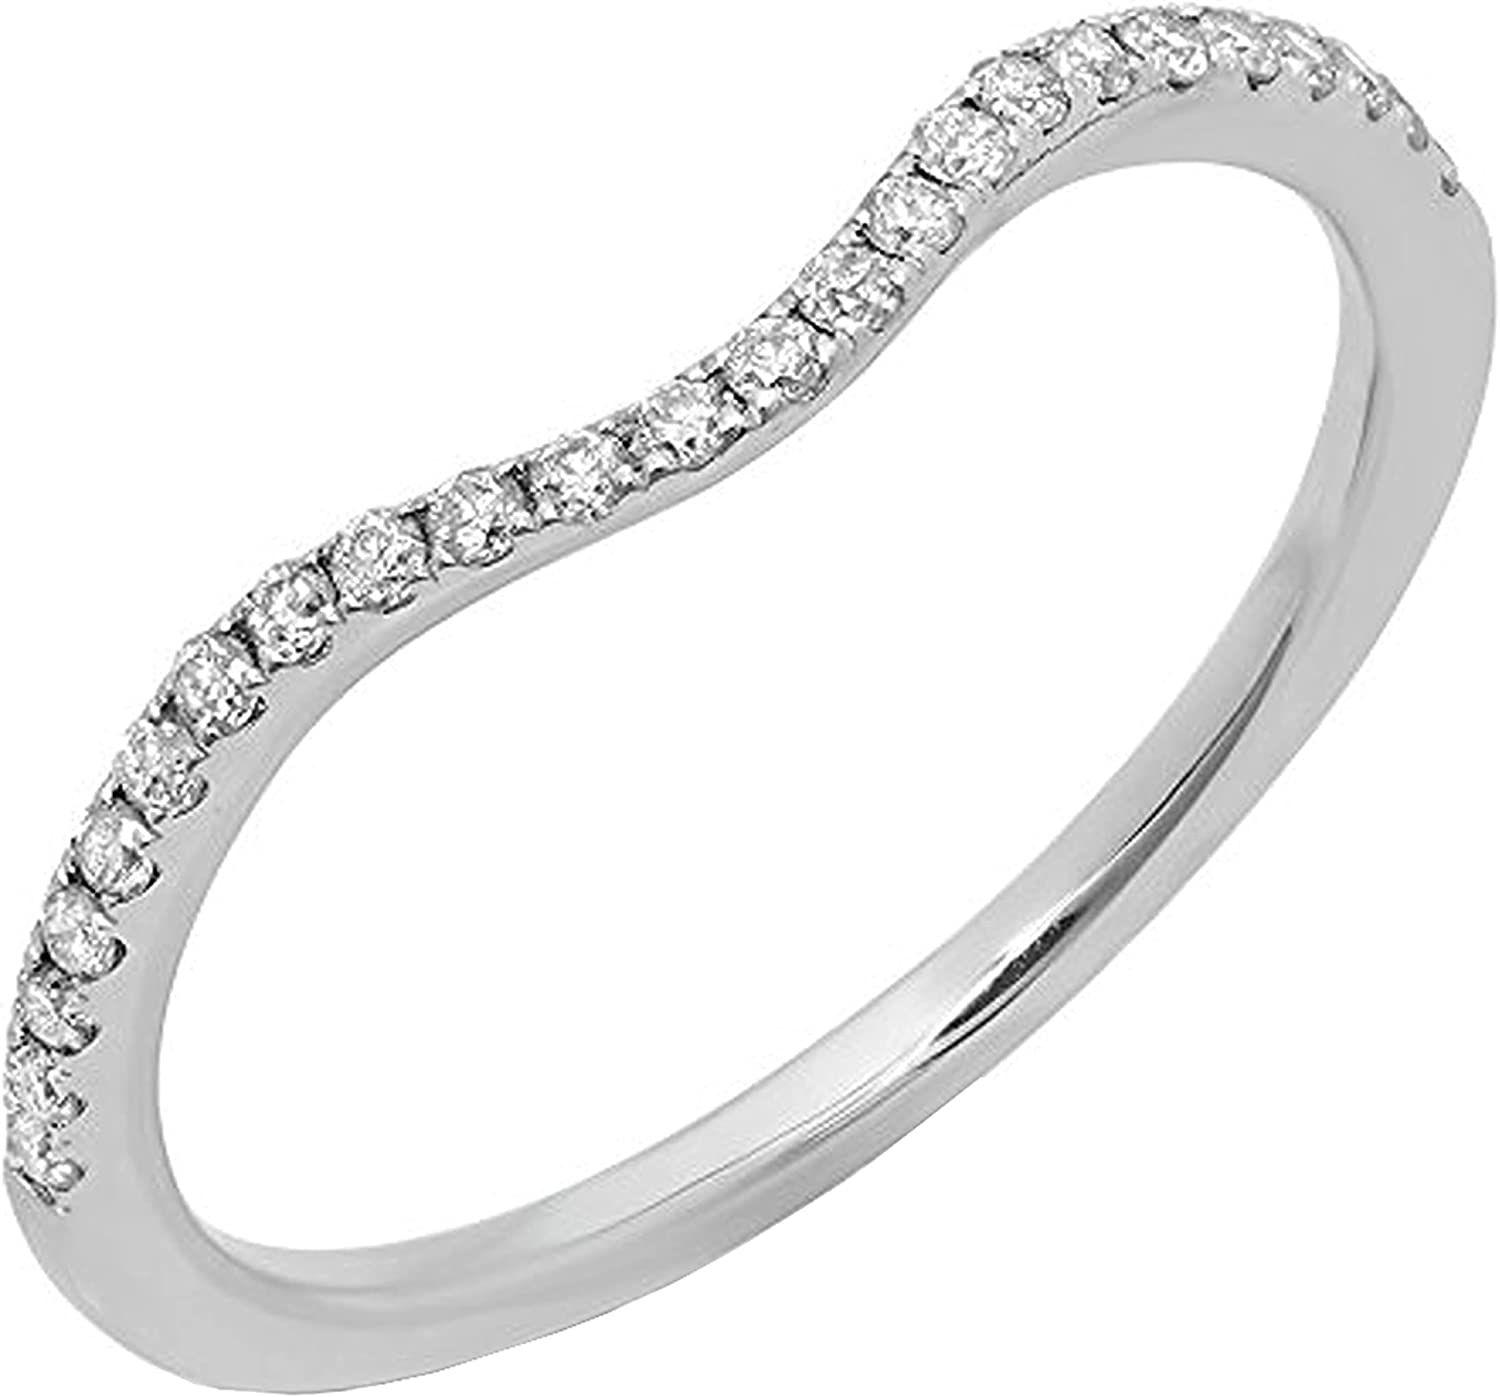 Dazzlingrock Collection 0.30 Carat (ctw) Round White Cubic Zirconia Guard Anniversray Wedding Band 1/3 CT, 10K Gold